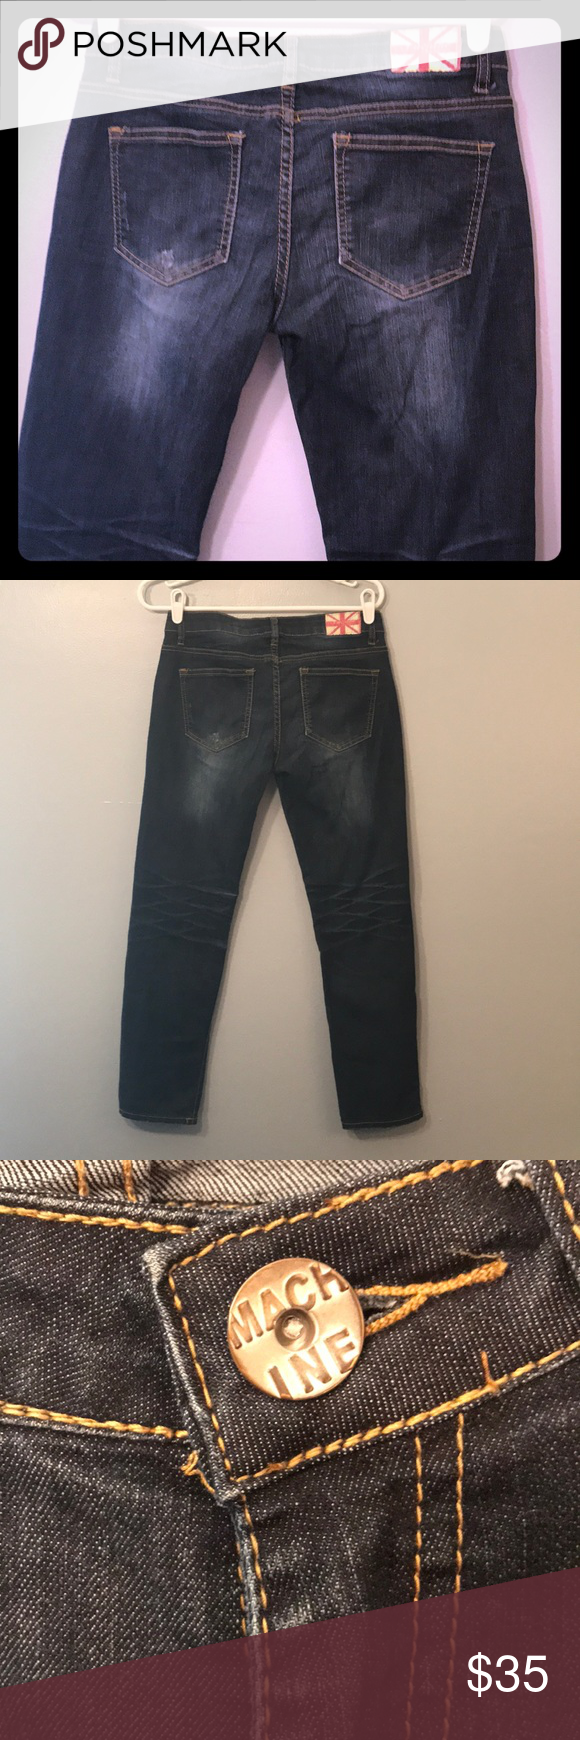 Machine Jeans size 11 skinny jeans Great fitting machine